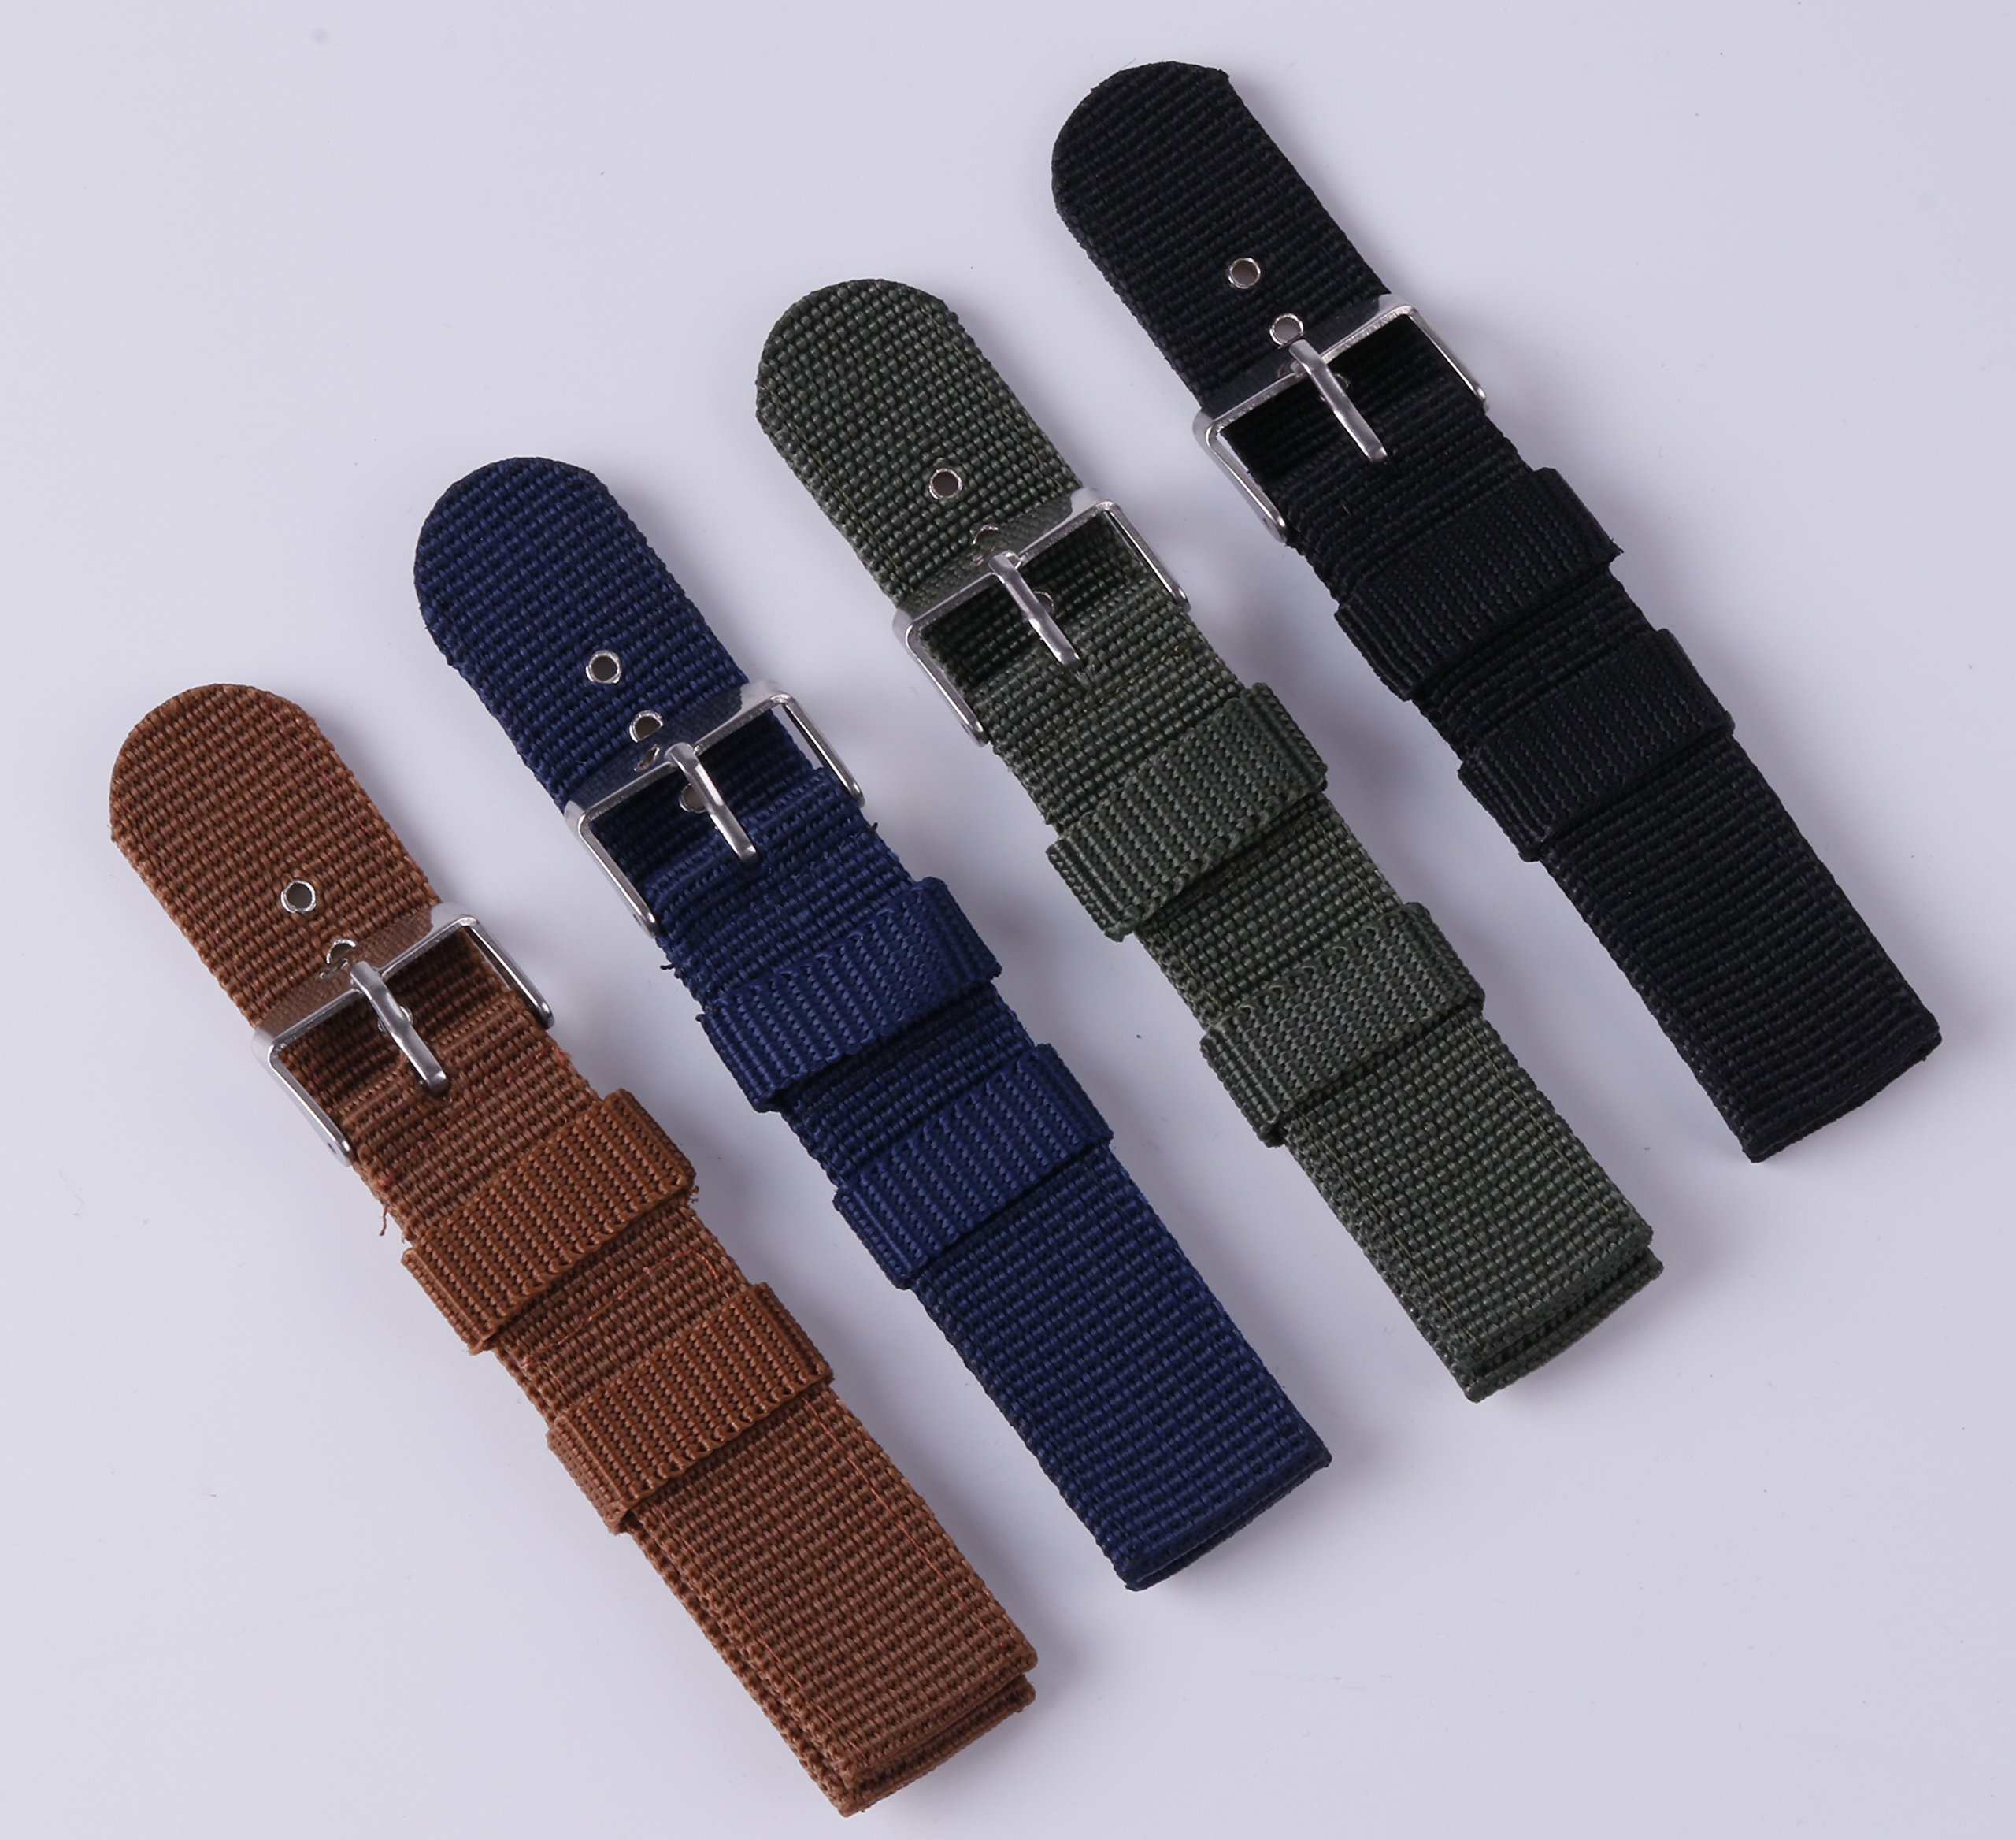 4pcs Nylon Watch Bands 16mm 18mm 20mm 22mm 24mm Premium Replacement NATO Style Watch Straps for Women Men by BONSTRAP (Image #2)